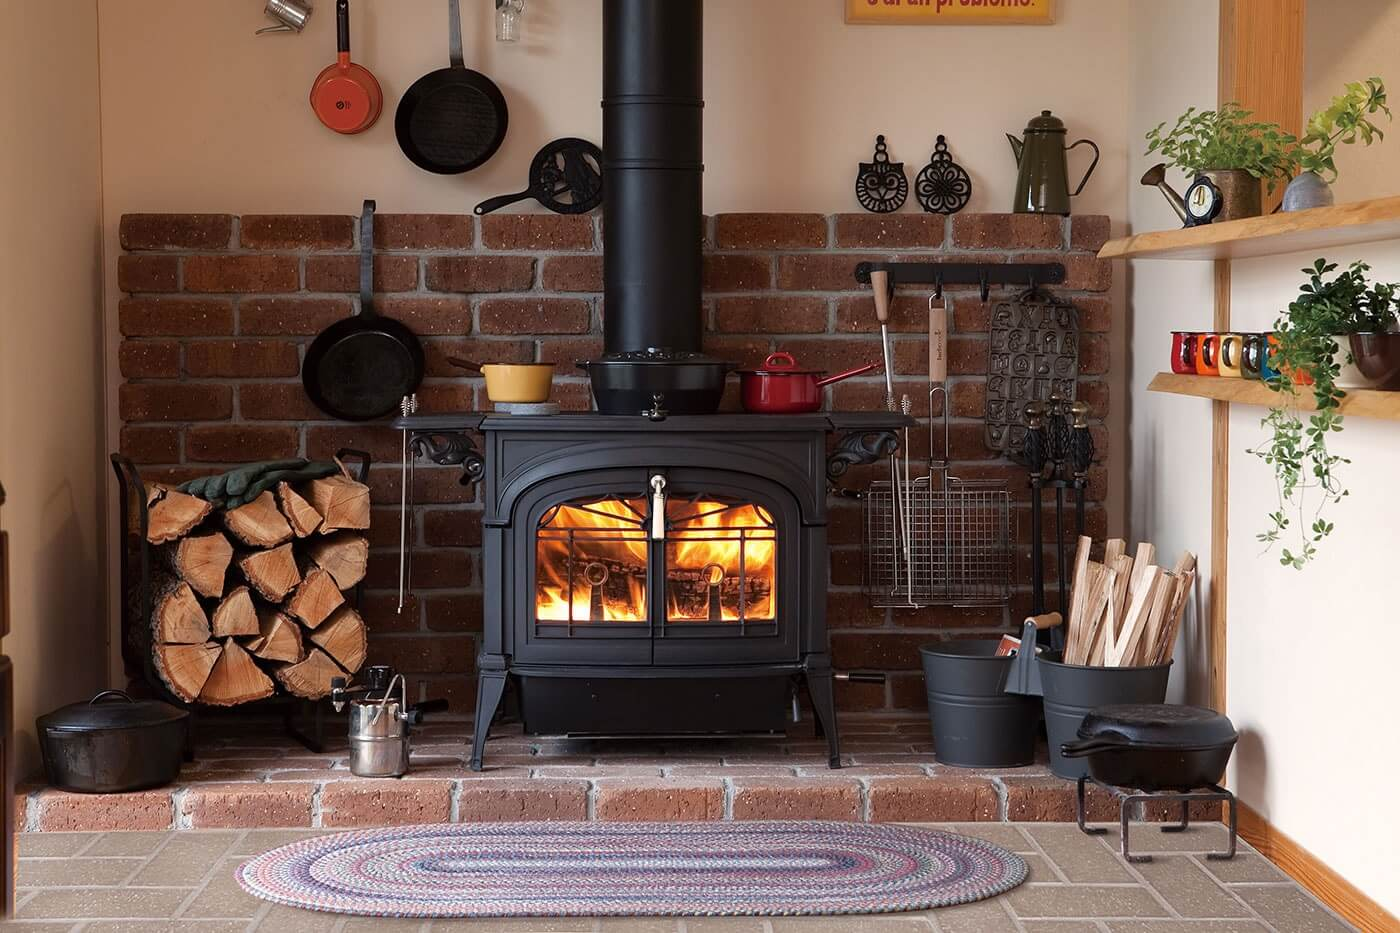 Vermont Castings Encore wood stove in black